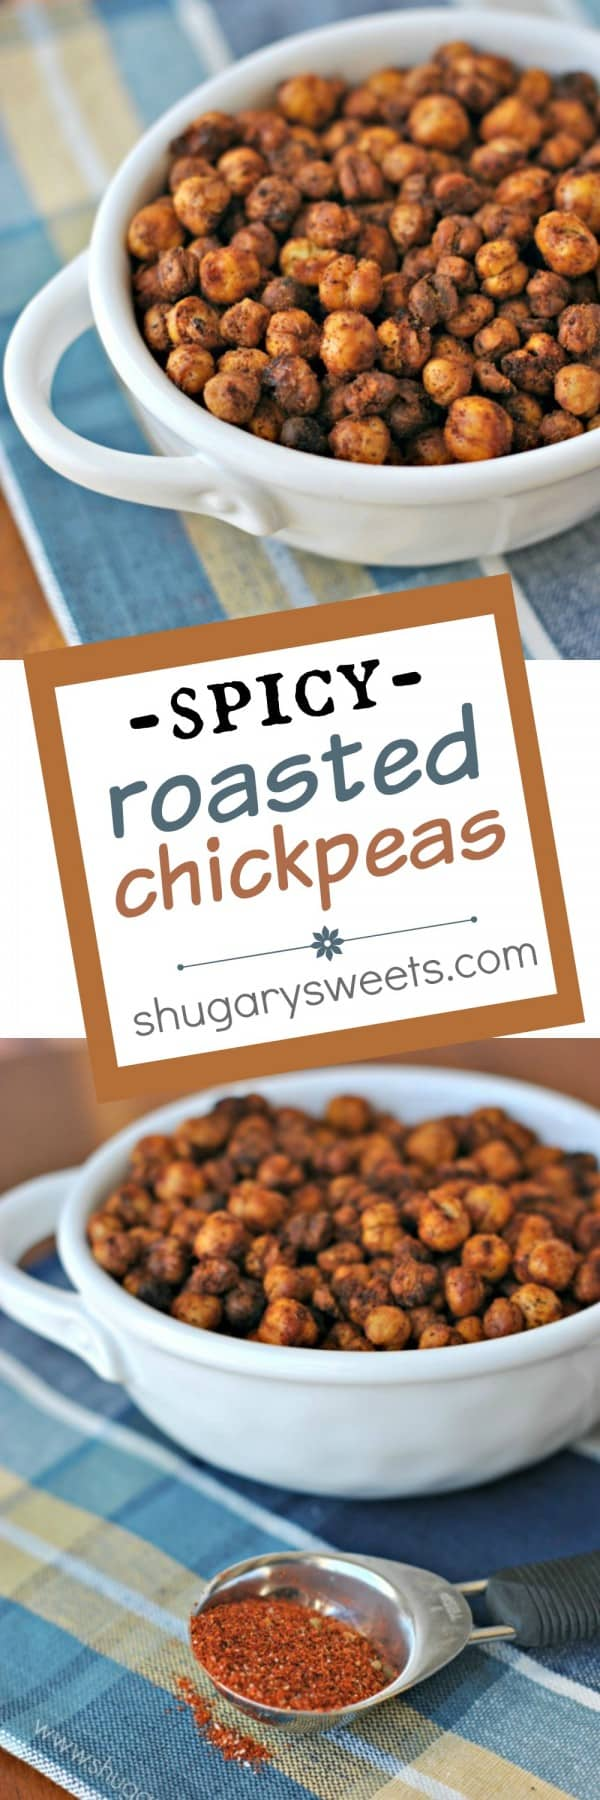 Crunchy, taco seasoned Spicy Roasted Chickpeas make a great snack idea! Full of fiber which keeps you satisfied longer!